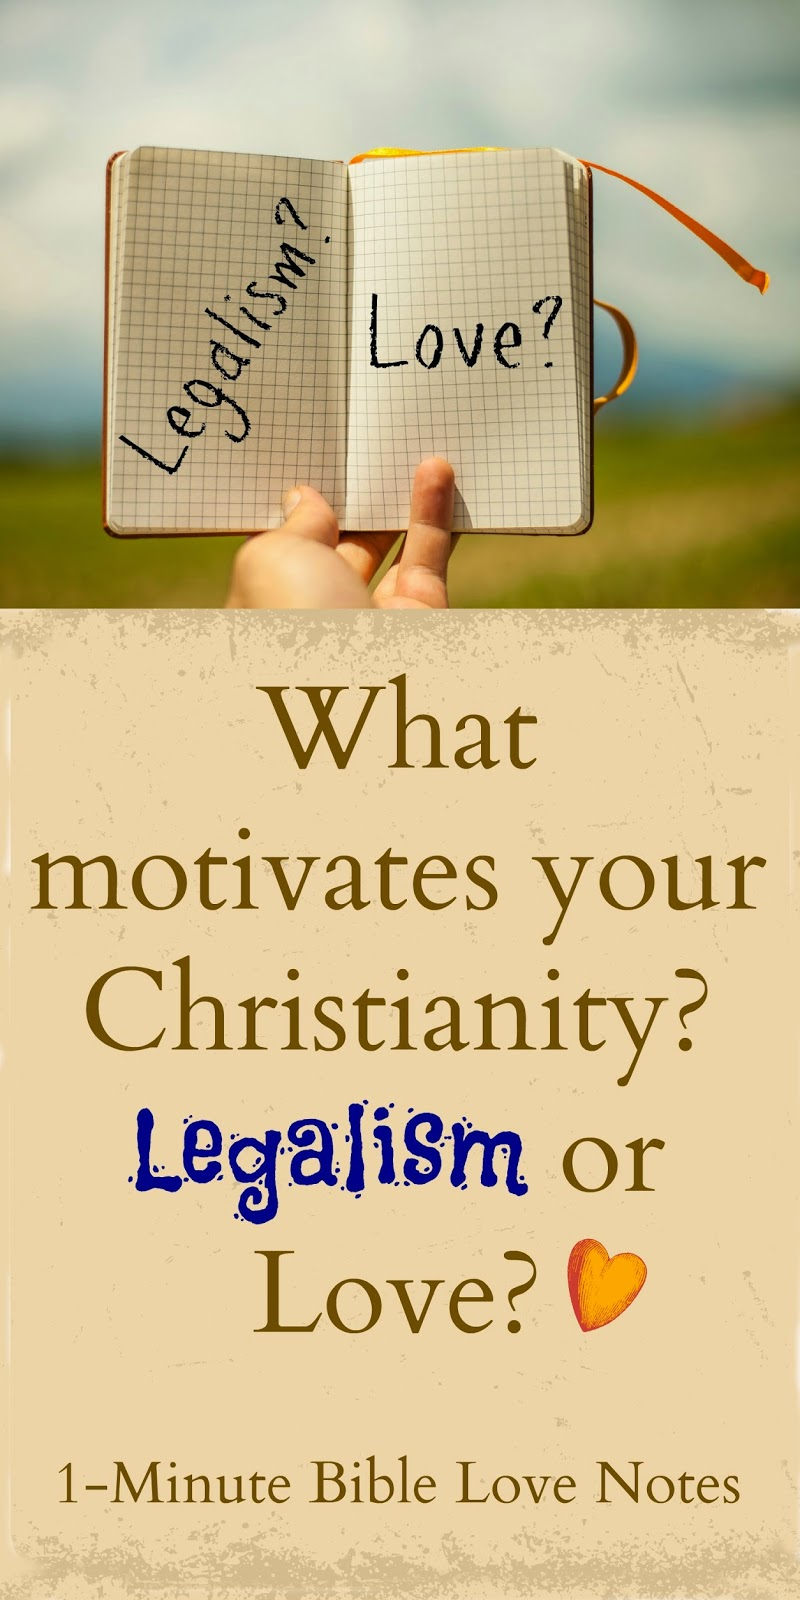 Obedience, rules, laws, legalism, genuine Christianity